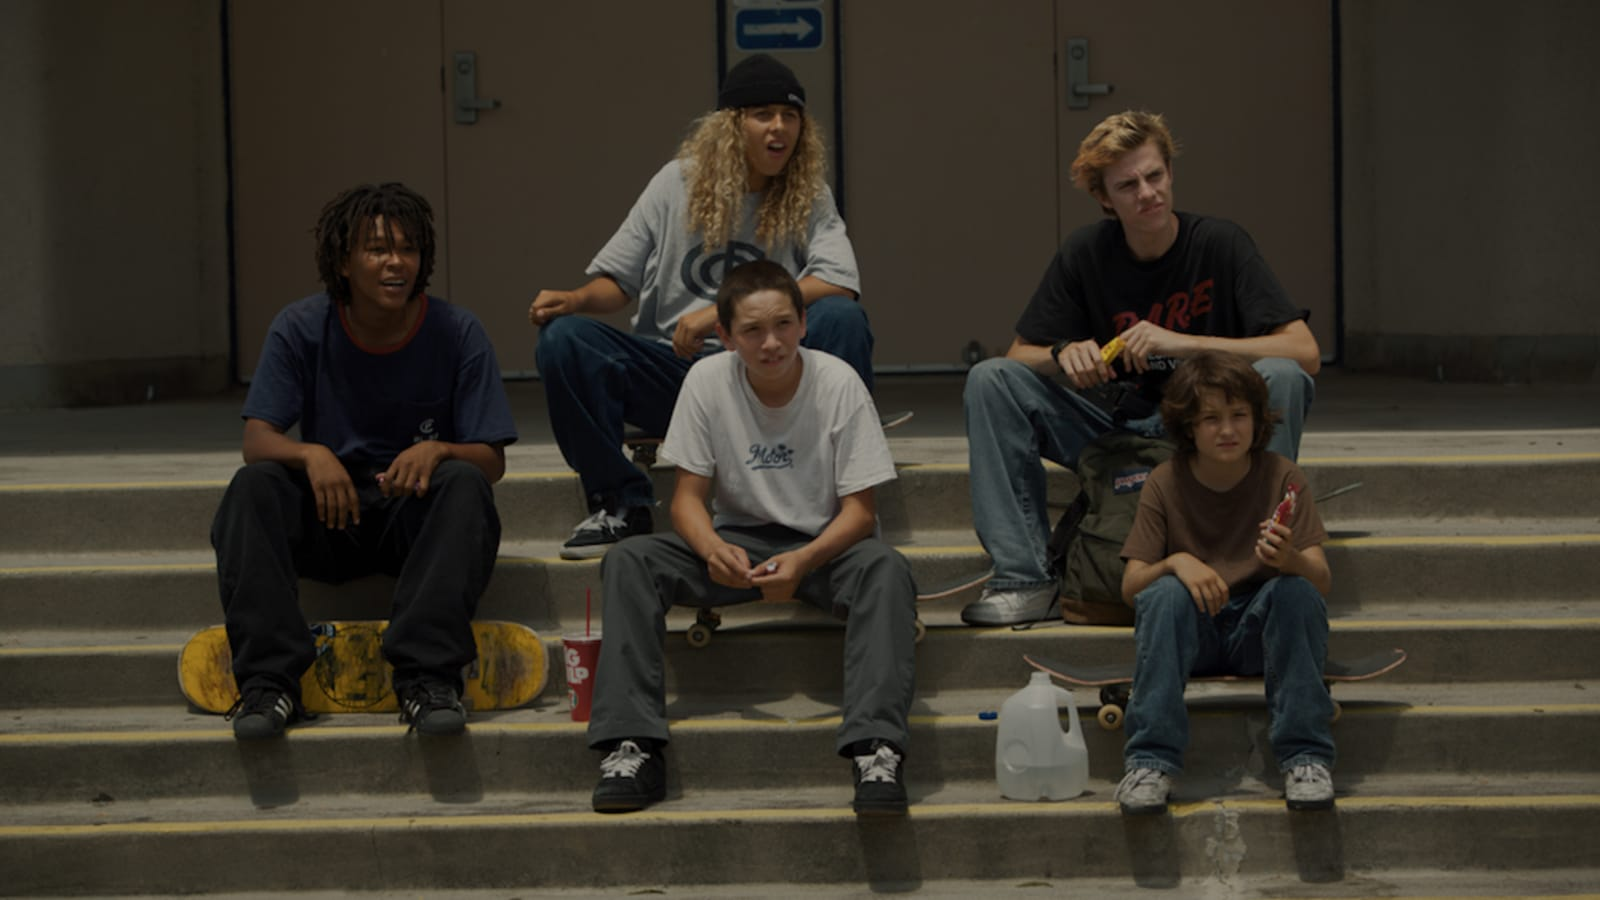 Wednesday 20.03.19 – 8pm: Mid90s | A Jonah Hill Film